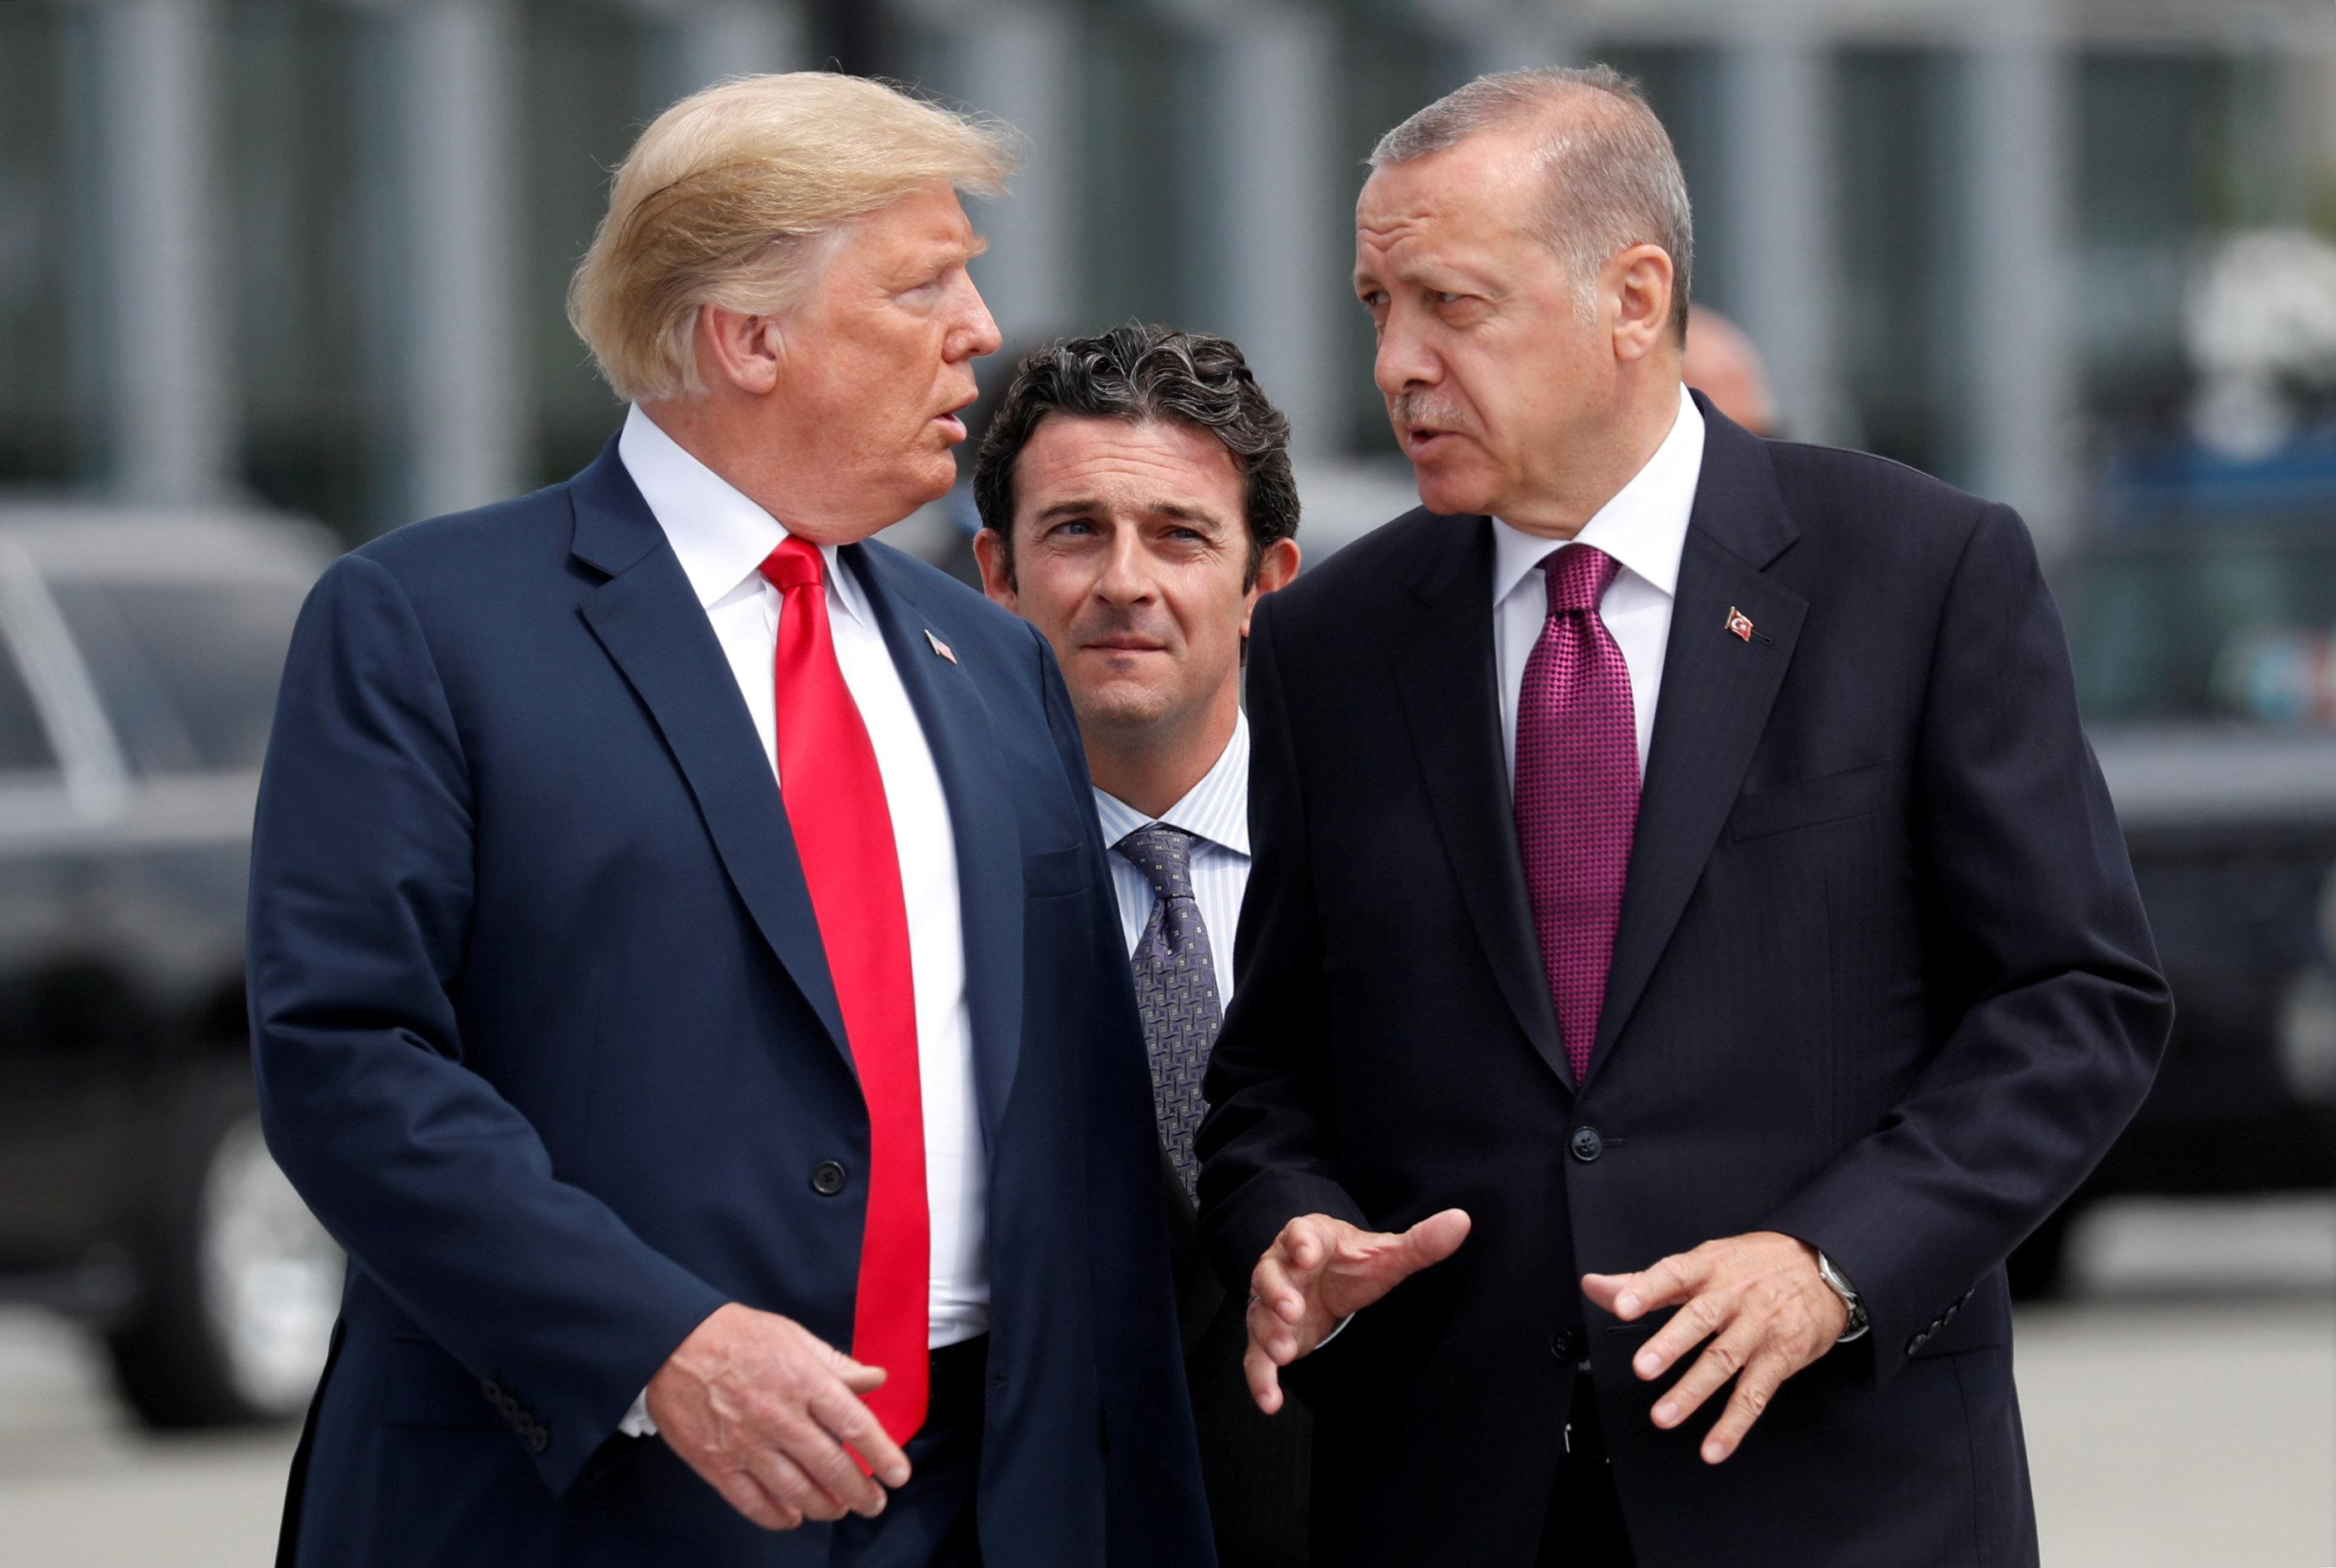 Trump doubles tariffs on Turkish steel and aluminum, says relations 'not good'